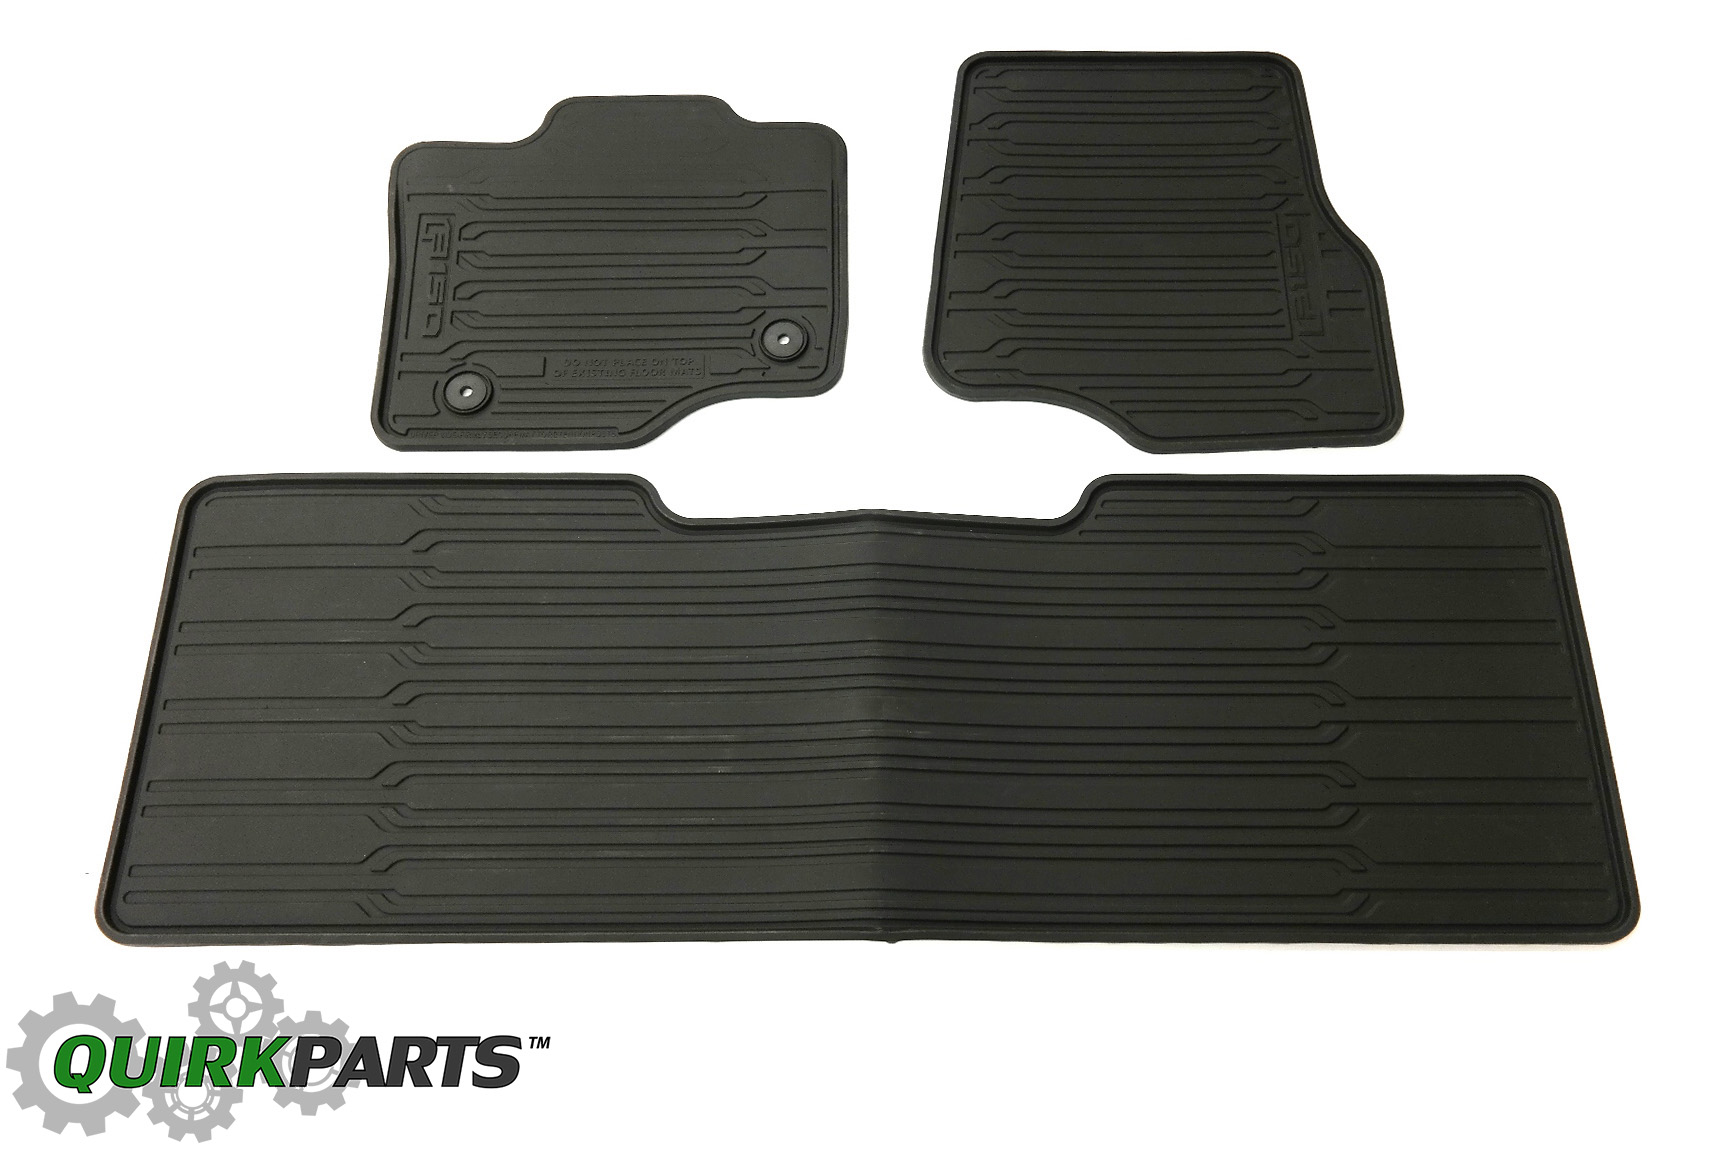 2015 Ford F-150 Extended Super Cab All Weather Rubber Floor Mats Black OEM